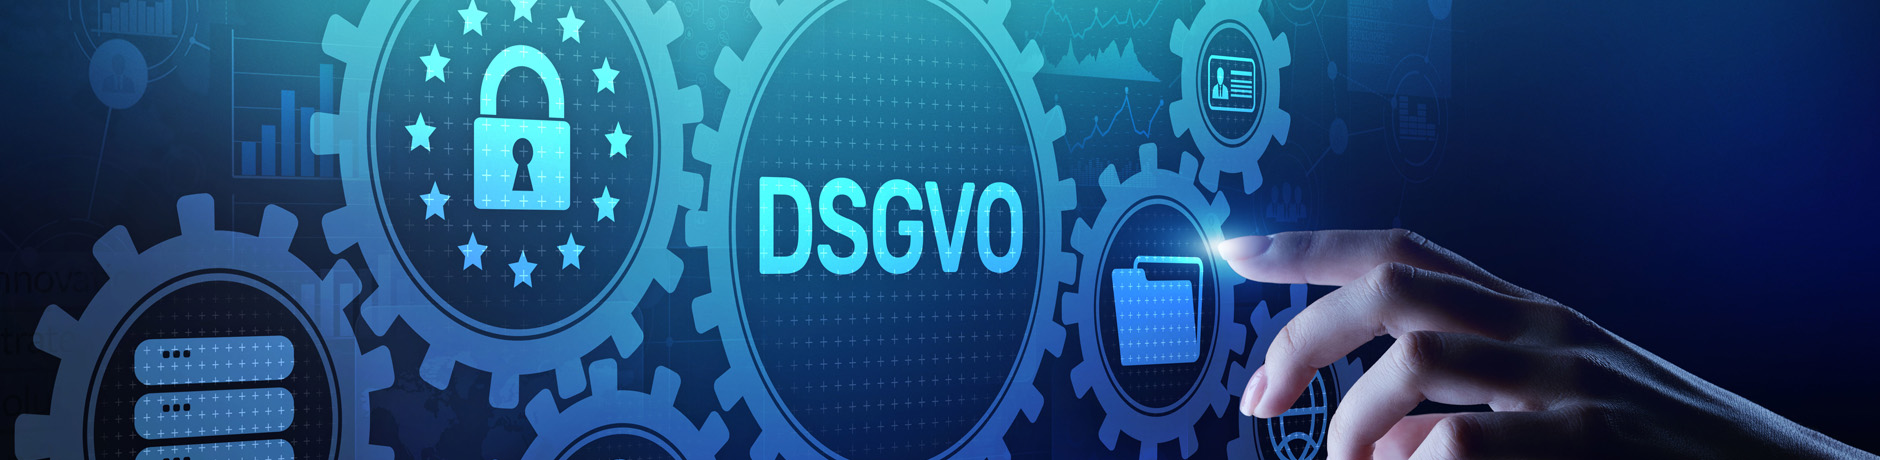 Testdatenmanagement - DSGVO, GDPR General data protection regulation european law cyber security personal information privacy concept on virtual screen